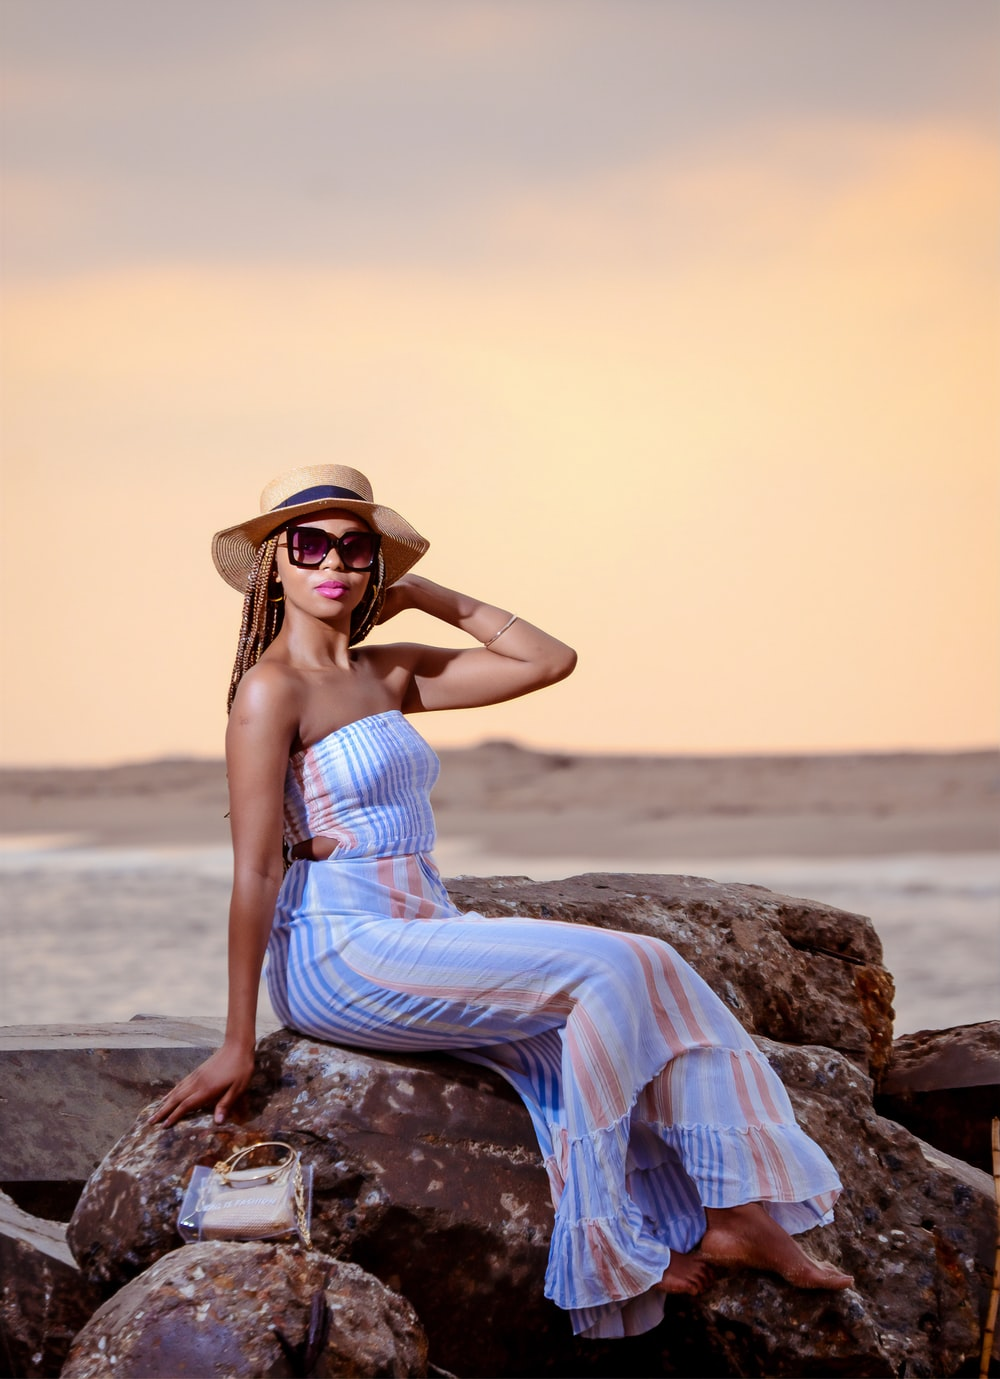 woman in blue sleeveless dress sitting on rock near sea during daytime